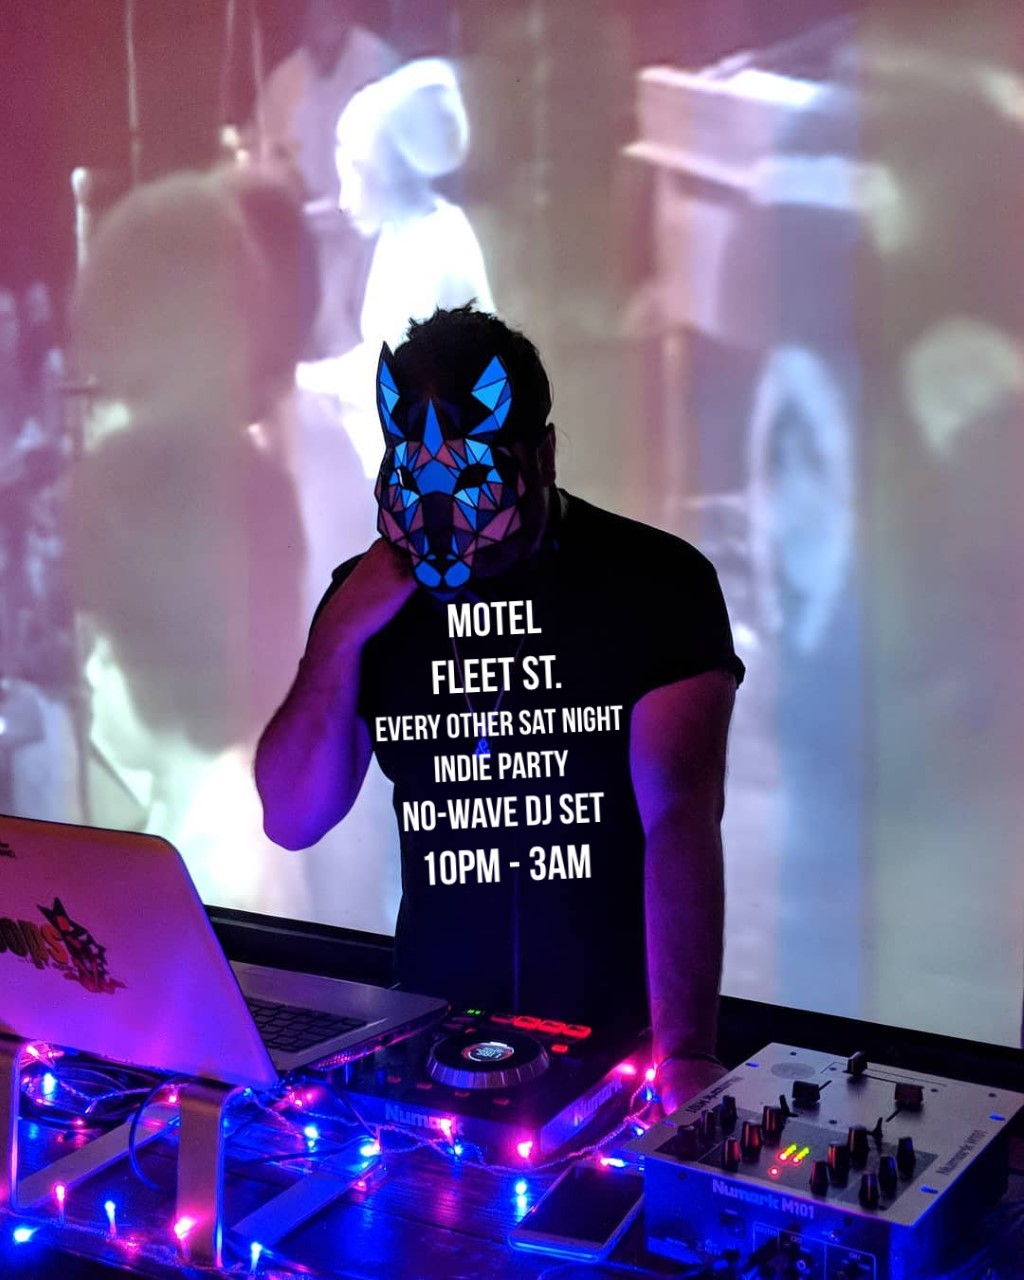 Motel — Indie Party - Every other SaturdayMotel, 5-7 Fleet Street, Liverpool, L1 4AR